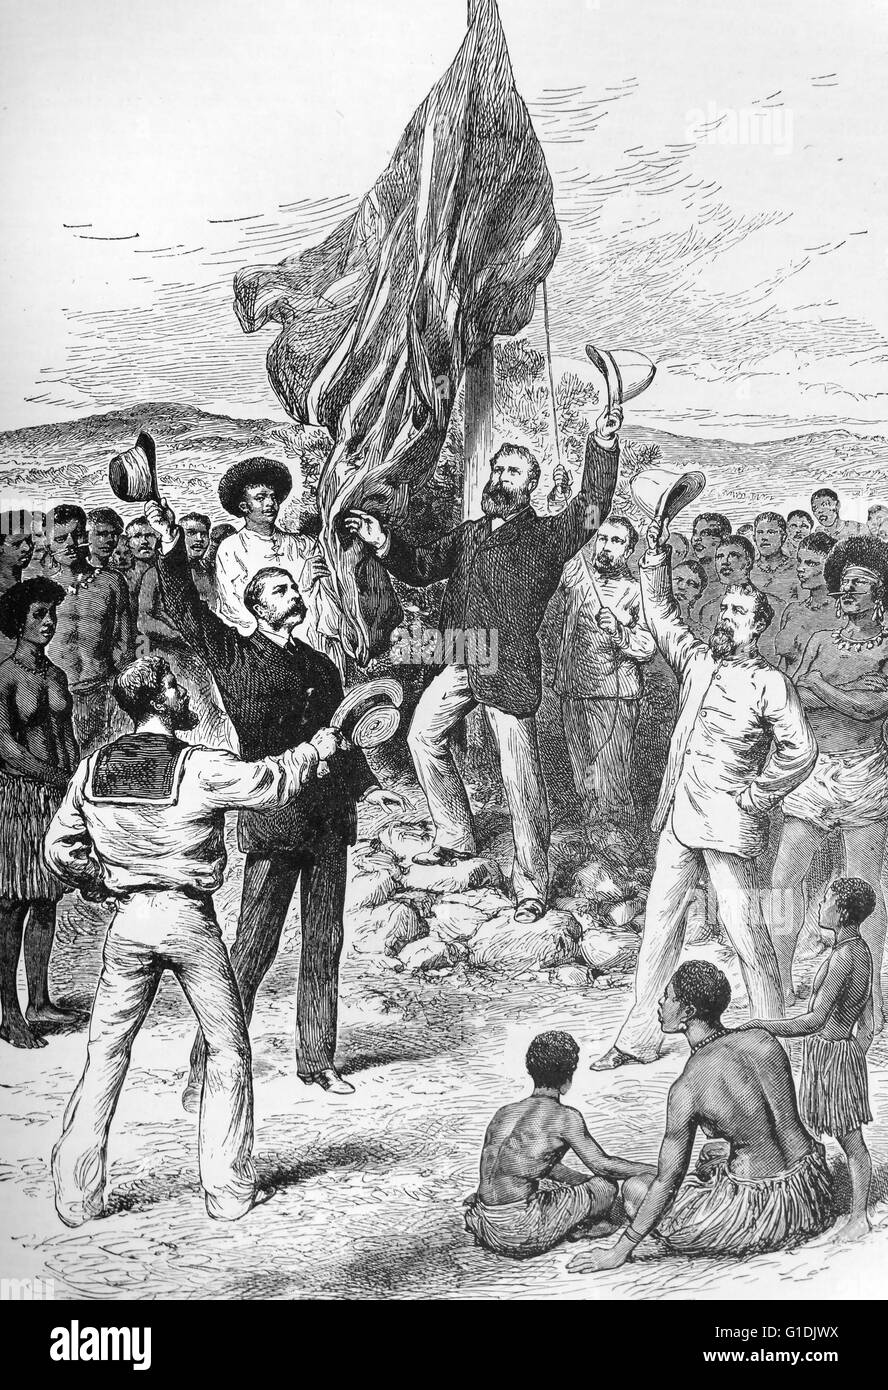 British cease control of Papua New Guinea from German colonial rule in March 1875. - Stock Image